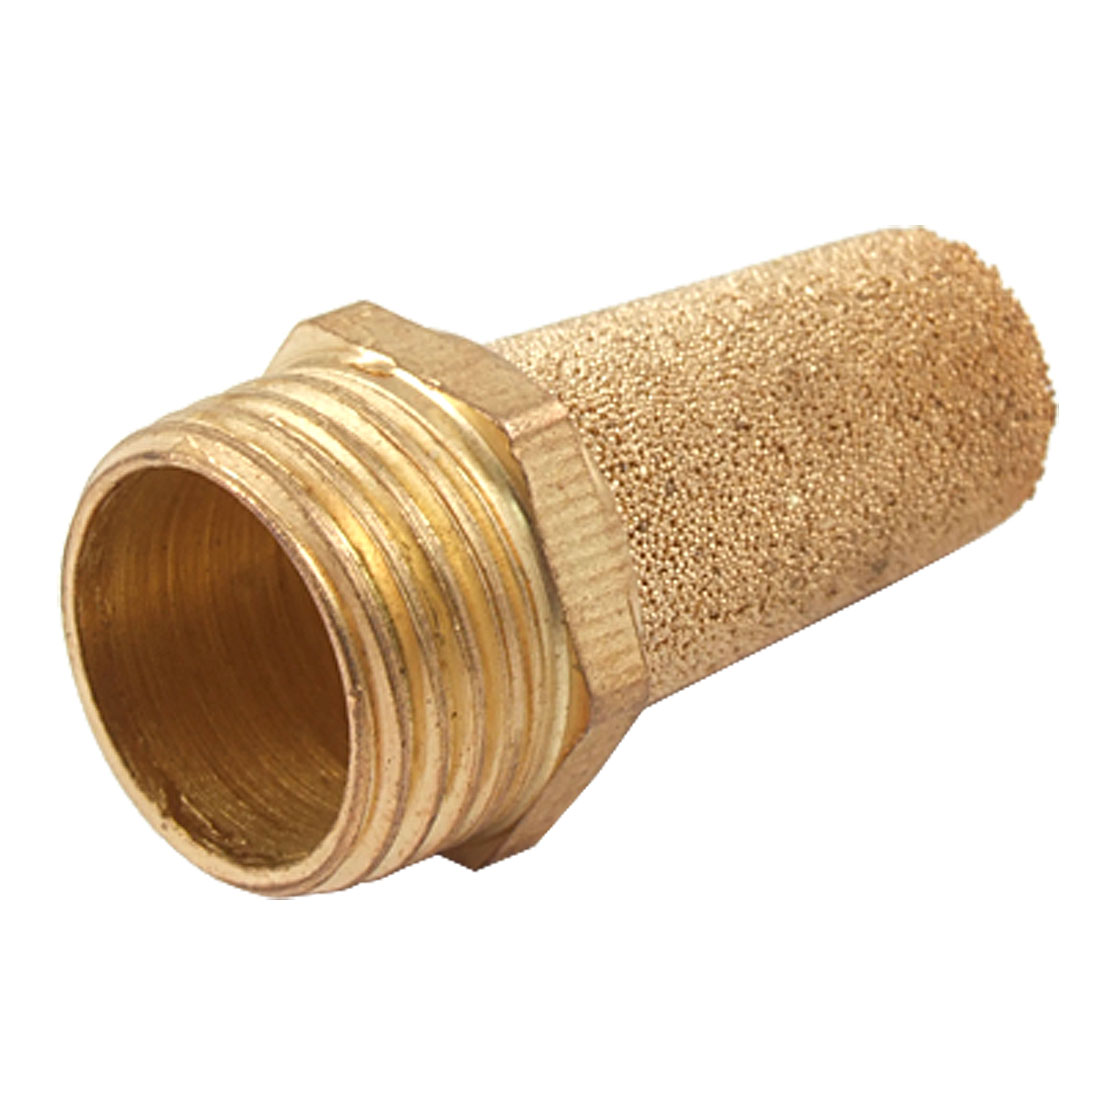 20mm Thread Brass Cylinder Pneumatic Sound Eliminator Muffler